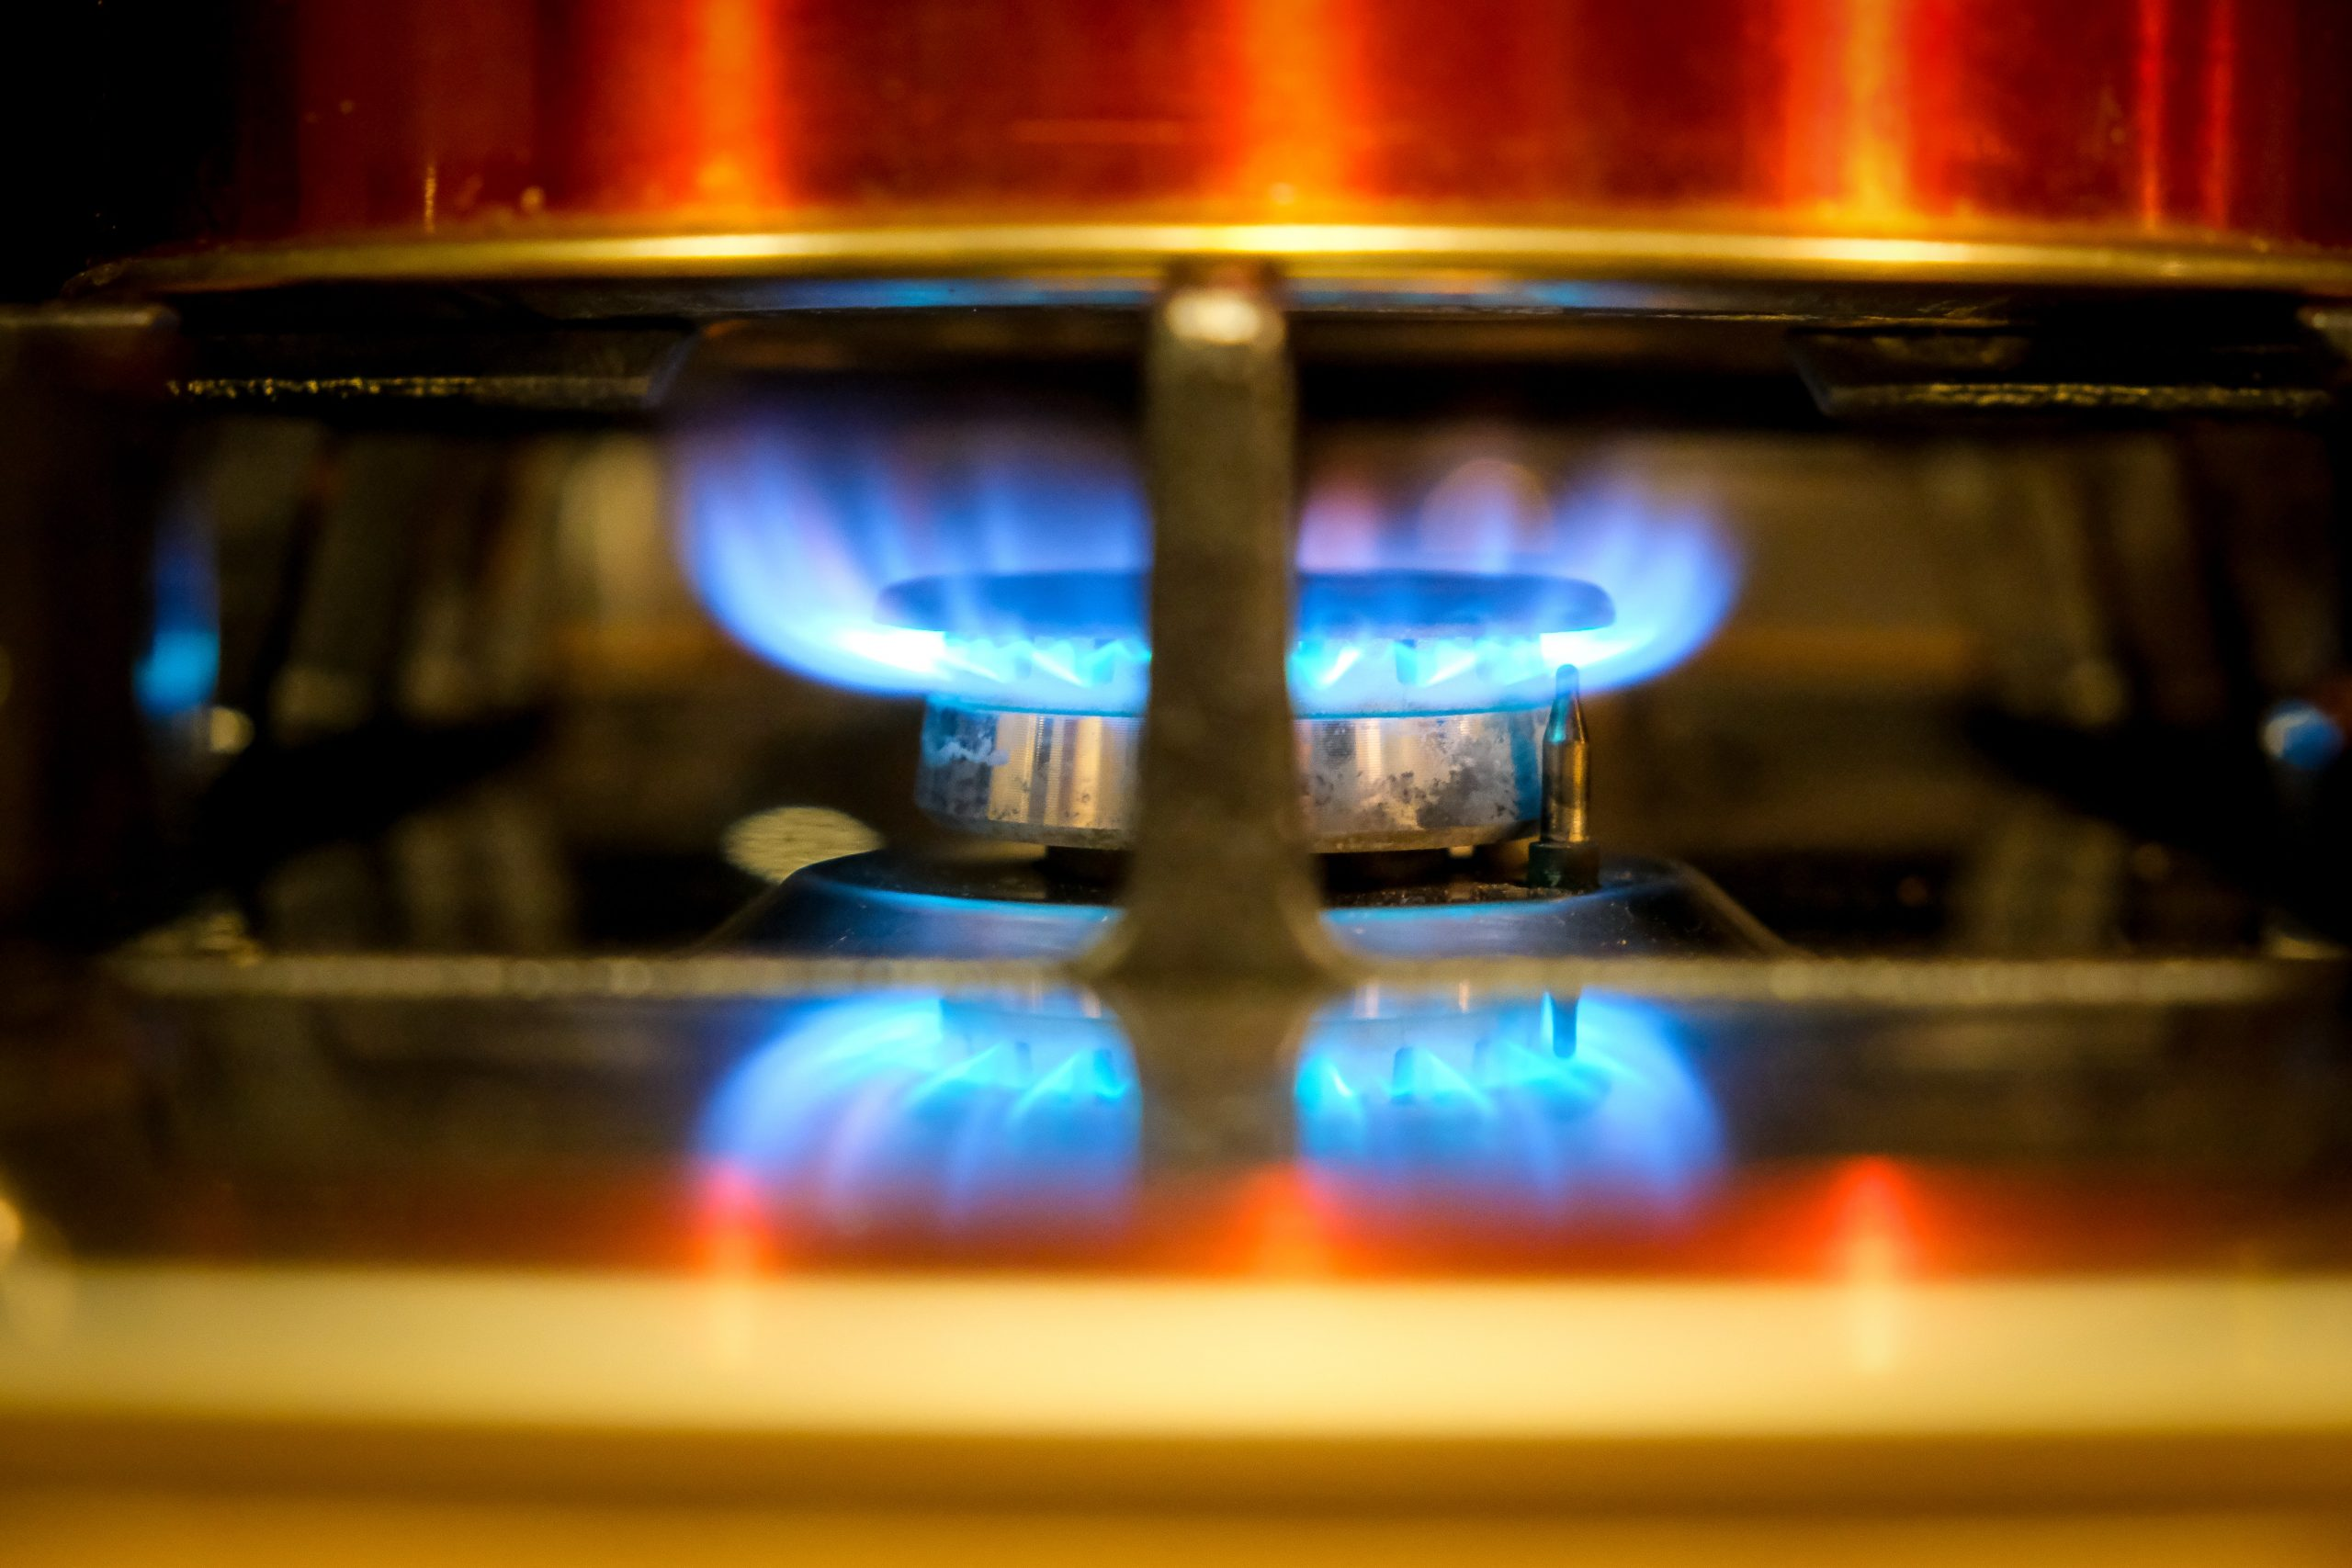 Commercial catering gas certificate